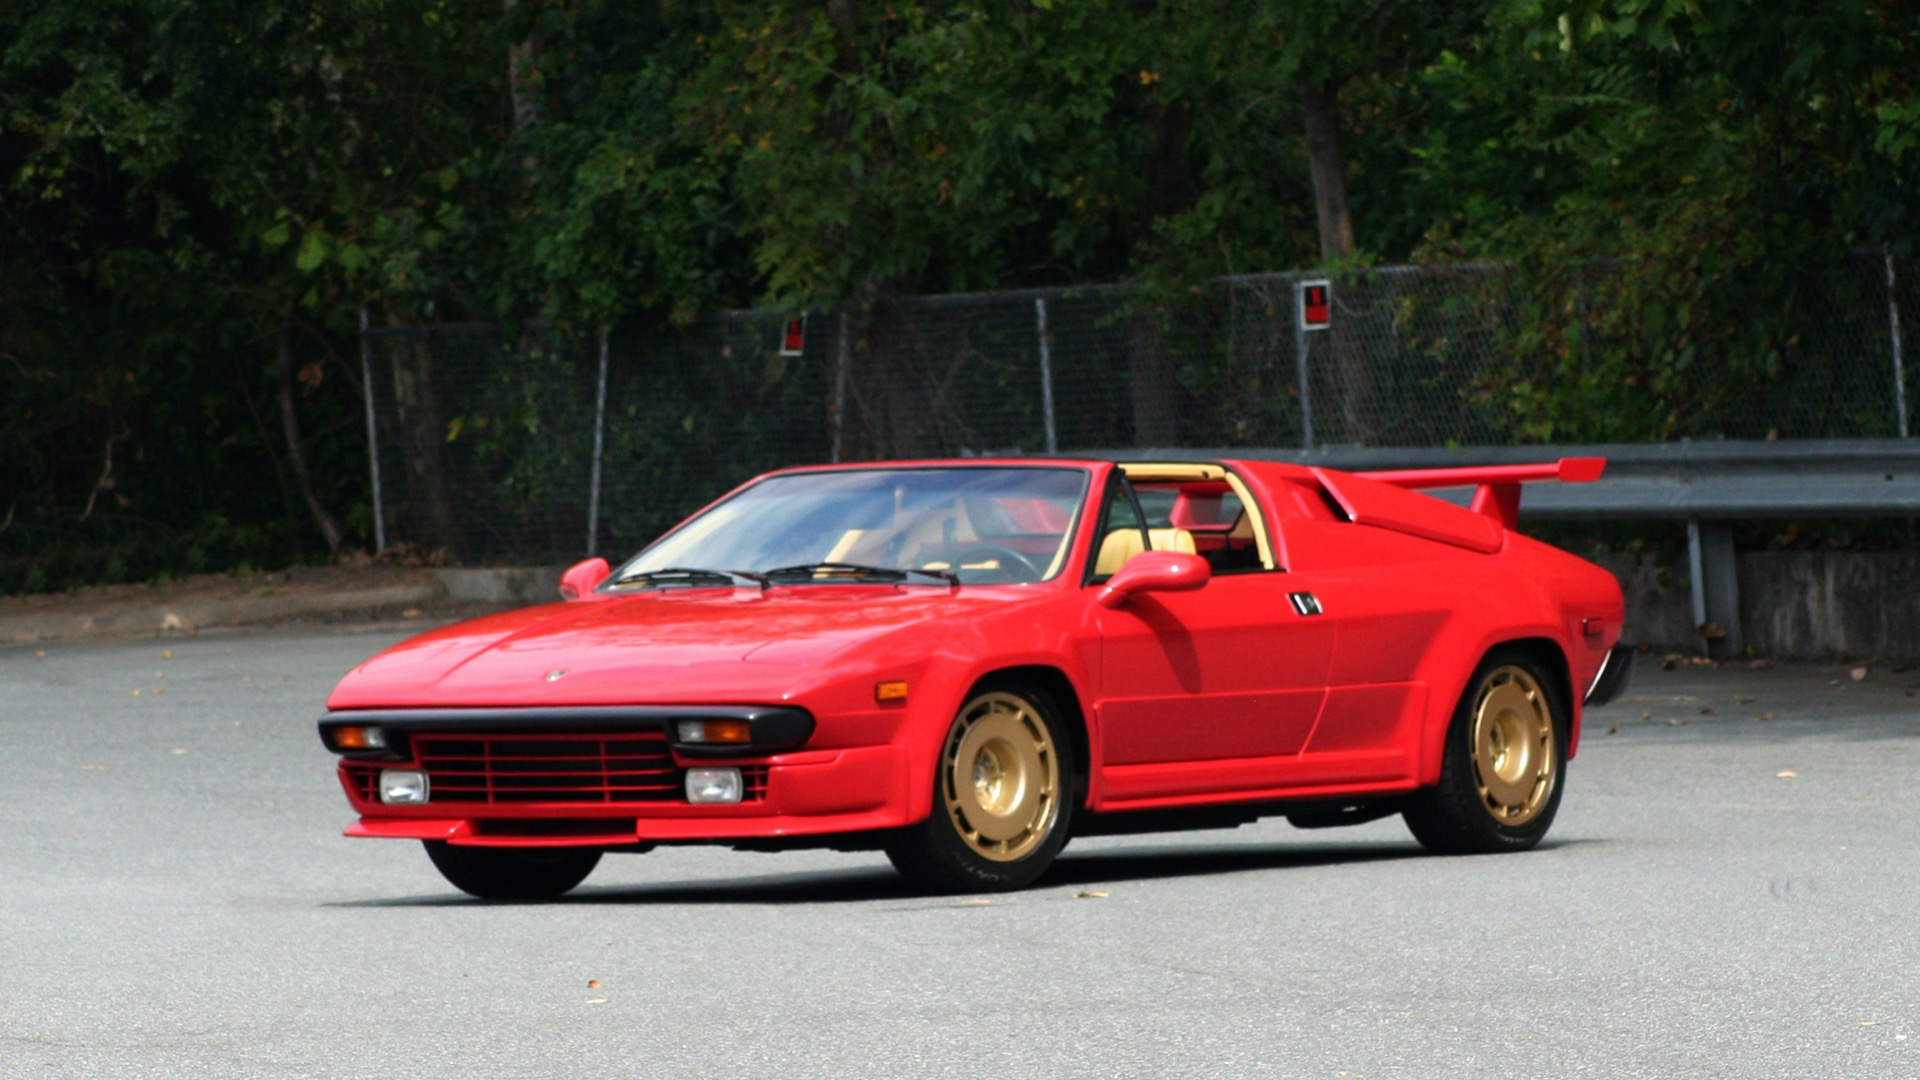 Used 1988 Lamborghini Jalpa 3.5 / 5-Speed Man / Low Miles / Excellent Condition for sale $108,995 at Formula Imports in Charlotte NC 28227 16